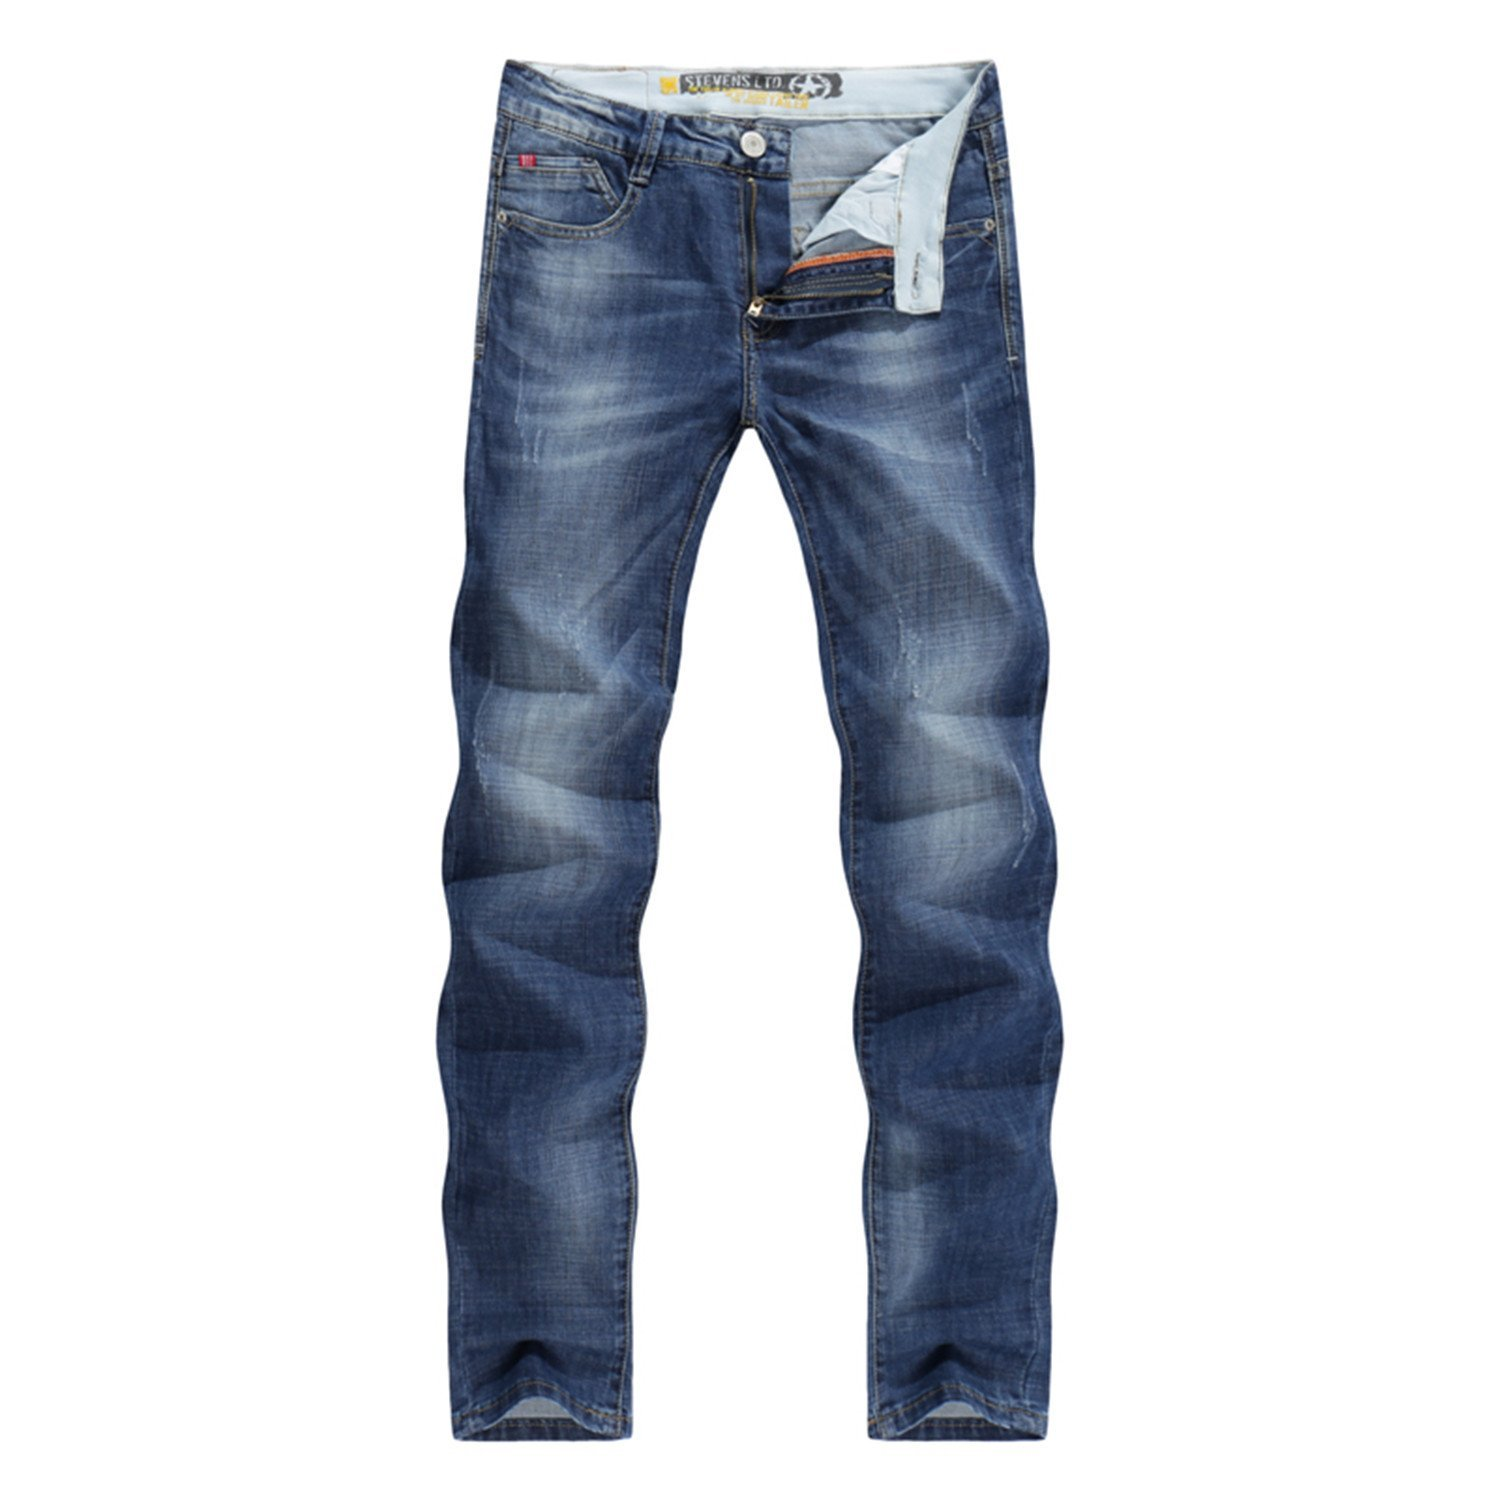 Ivan Johns Pants Casual Thin Summer Straight Slim Fit Blue Jeans Stretch Denim Pants Trousers Classic Cowboys Young Man